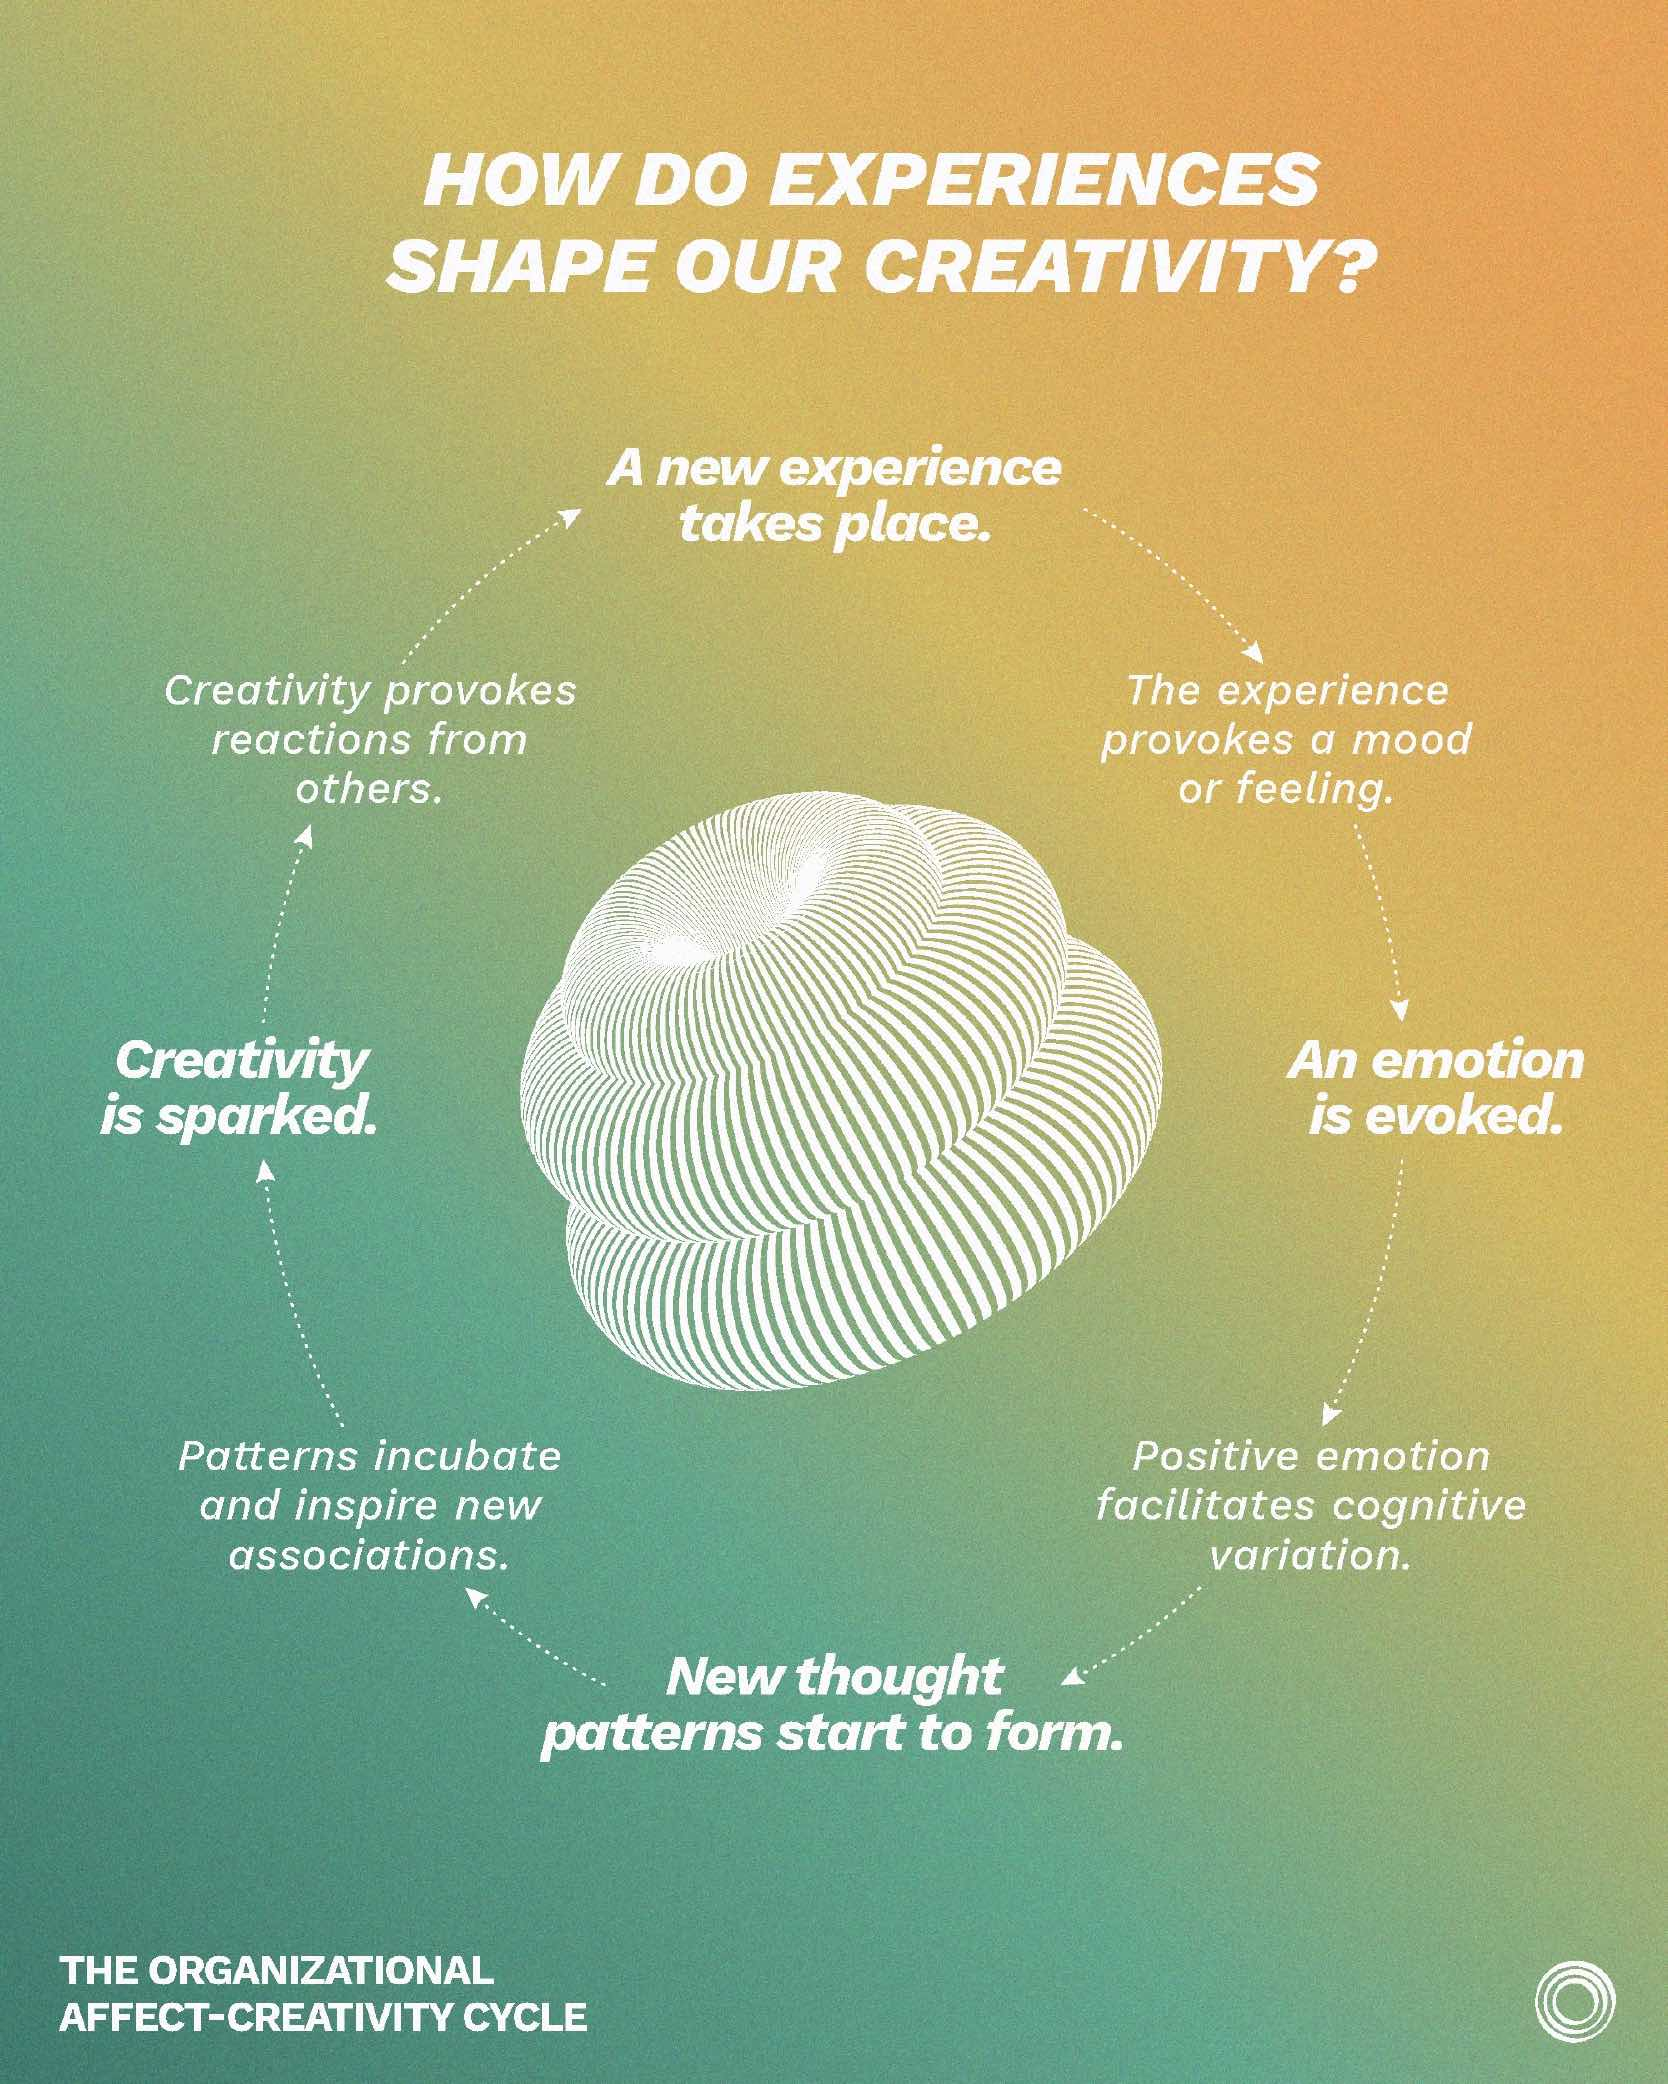 CreativiCreativity cycle linked to good moods and how Stillness meditation increases creativity through better mood